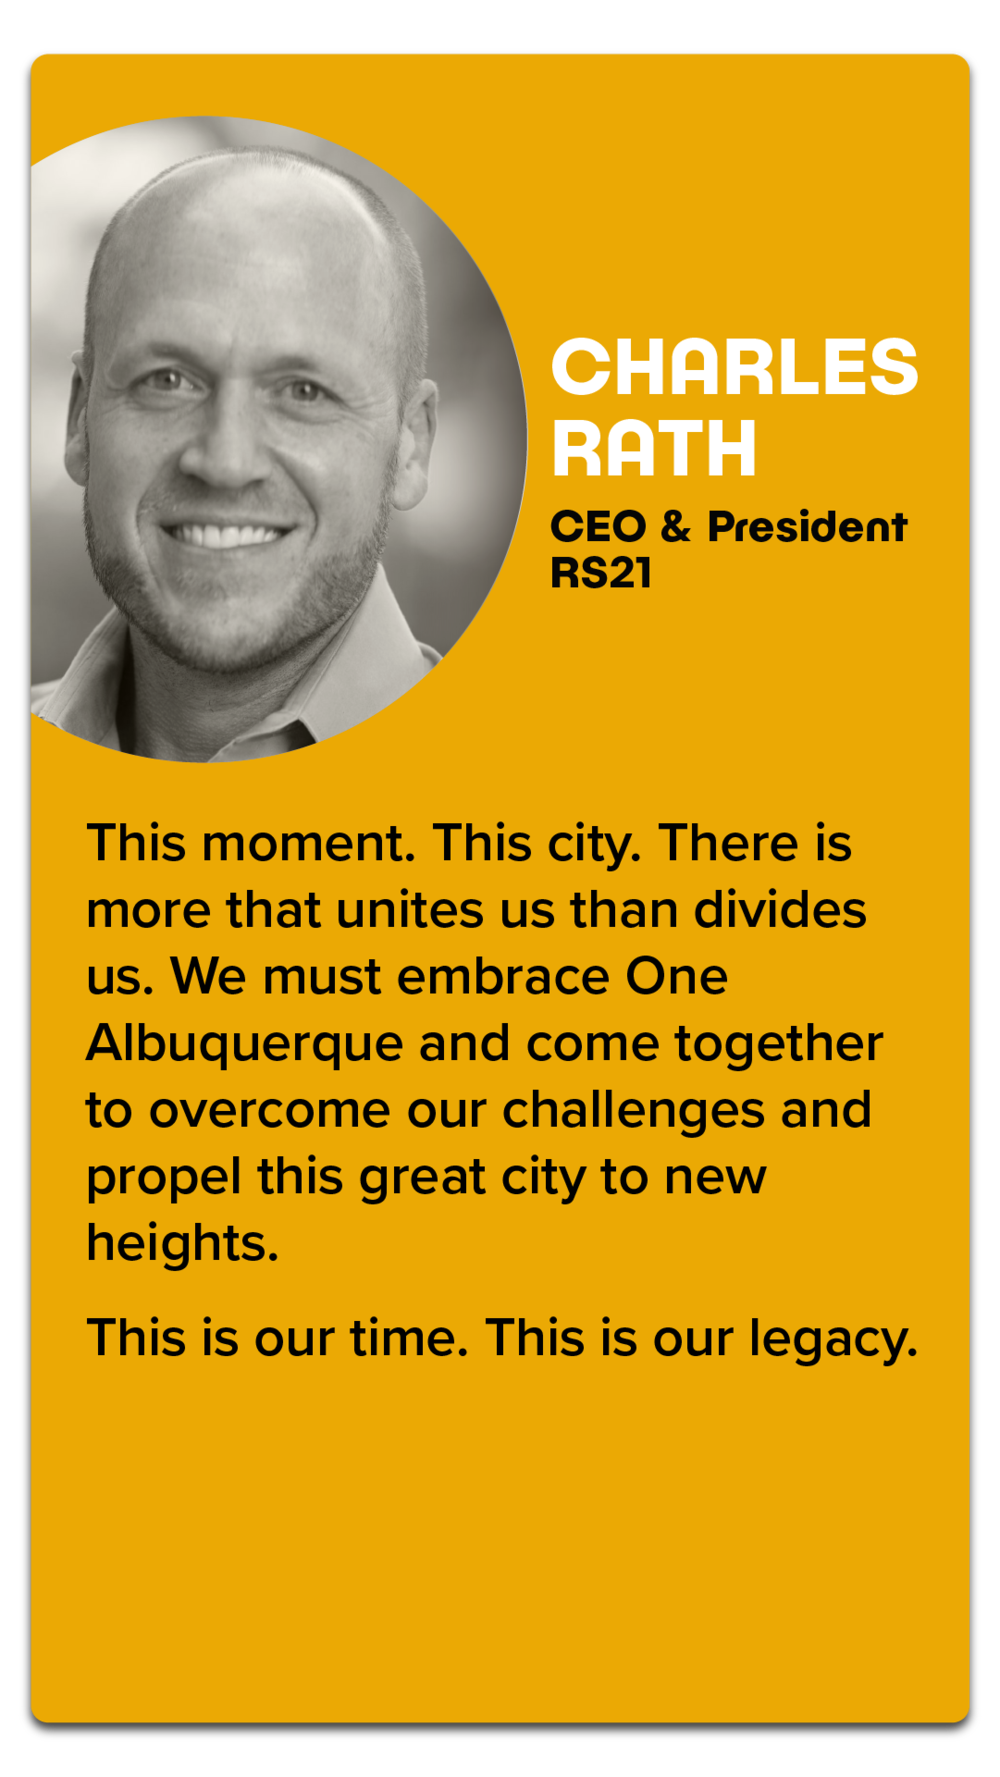 """Charles Rath, CEO & President, RS21  """"This moment. This city. There is more that unites us than divides us. We must embrace One Albuquerque and come together to overcome our challenges and propel this great city to new heights.  This is our time. This is our legacy."""""""